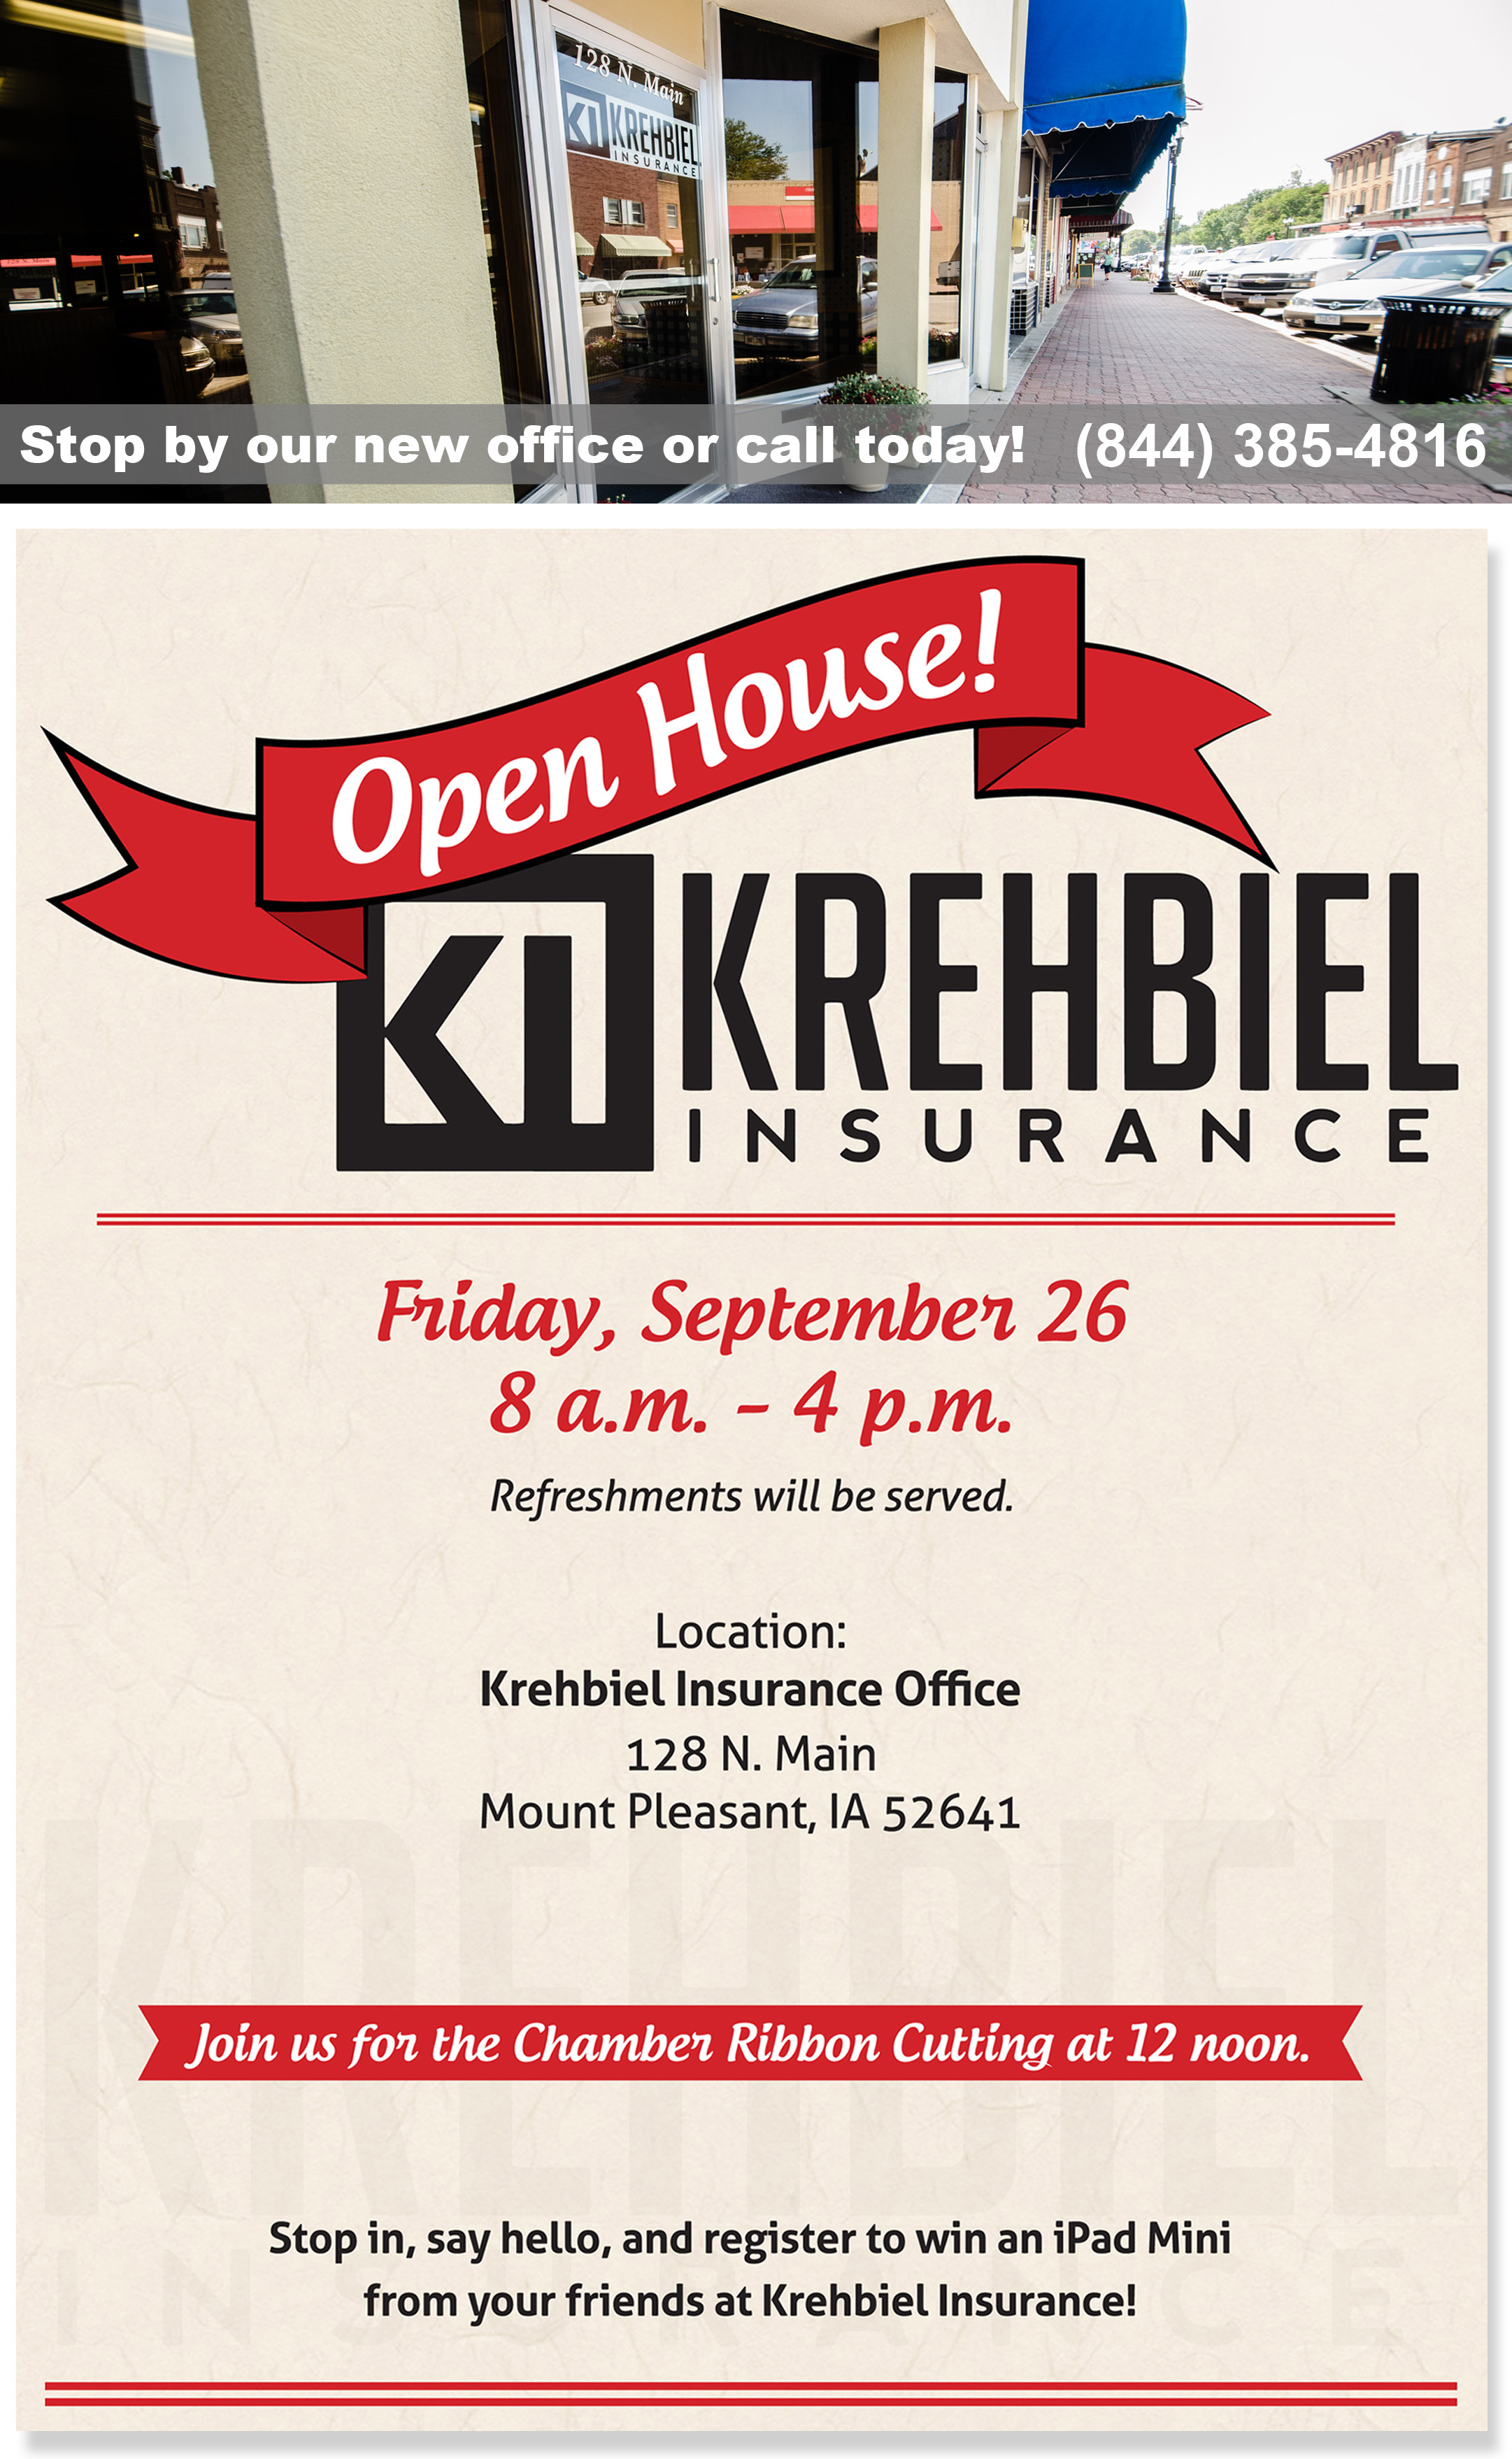 Krehbiel Insurance We Offer Medical And Benefit Solutions To